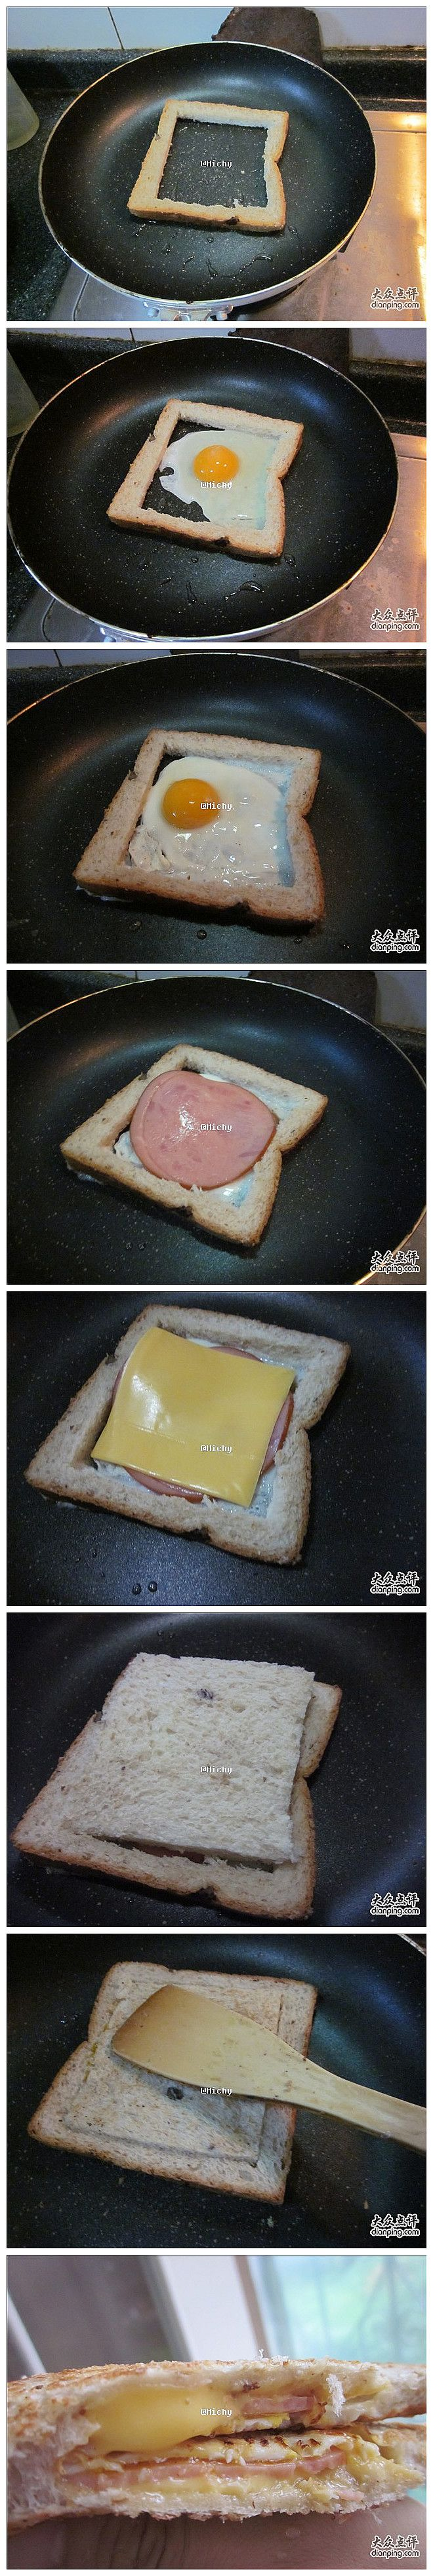 "Easy breakfast - I made this and that piece of bread is over sized and not a ""normal"" size. On an averaged sized slice of bread, the cheese is the same size as the slice. Fair warning when making this sandwich."